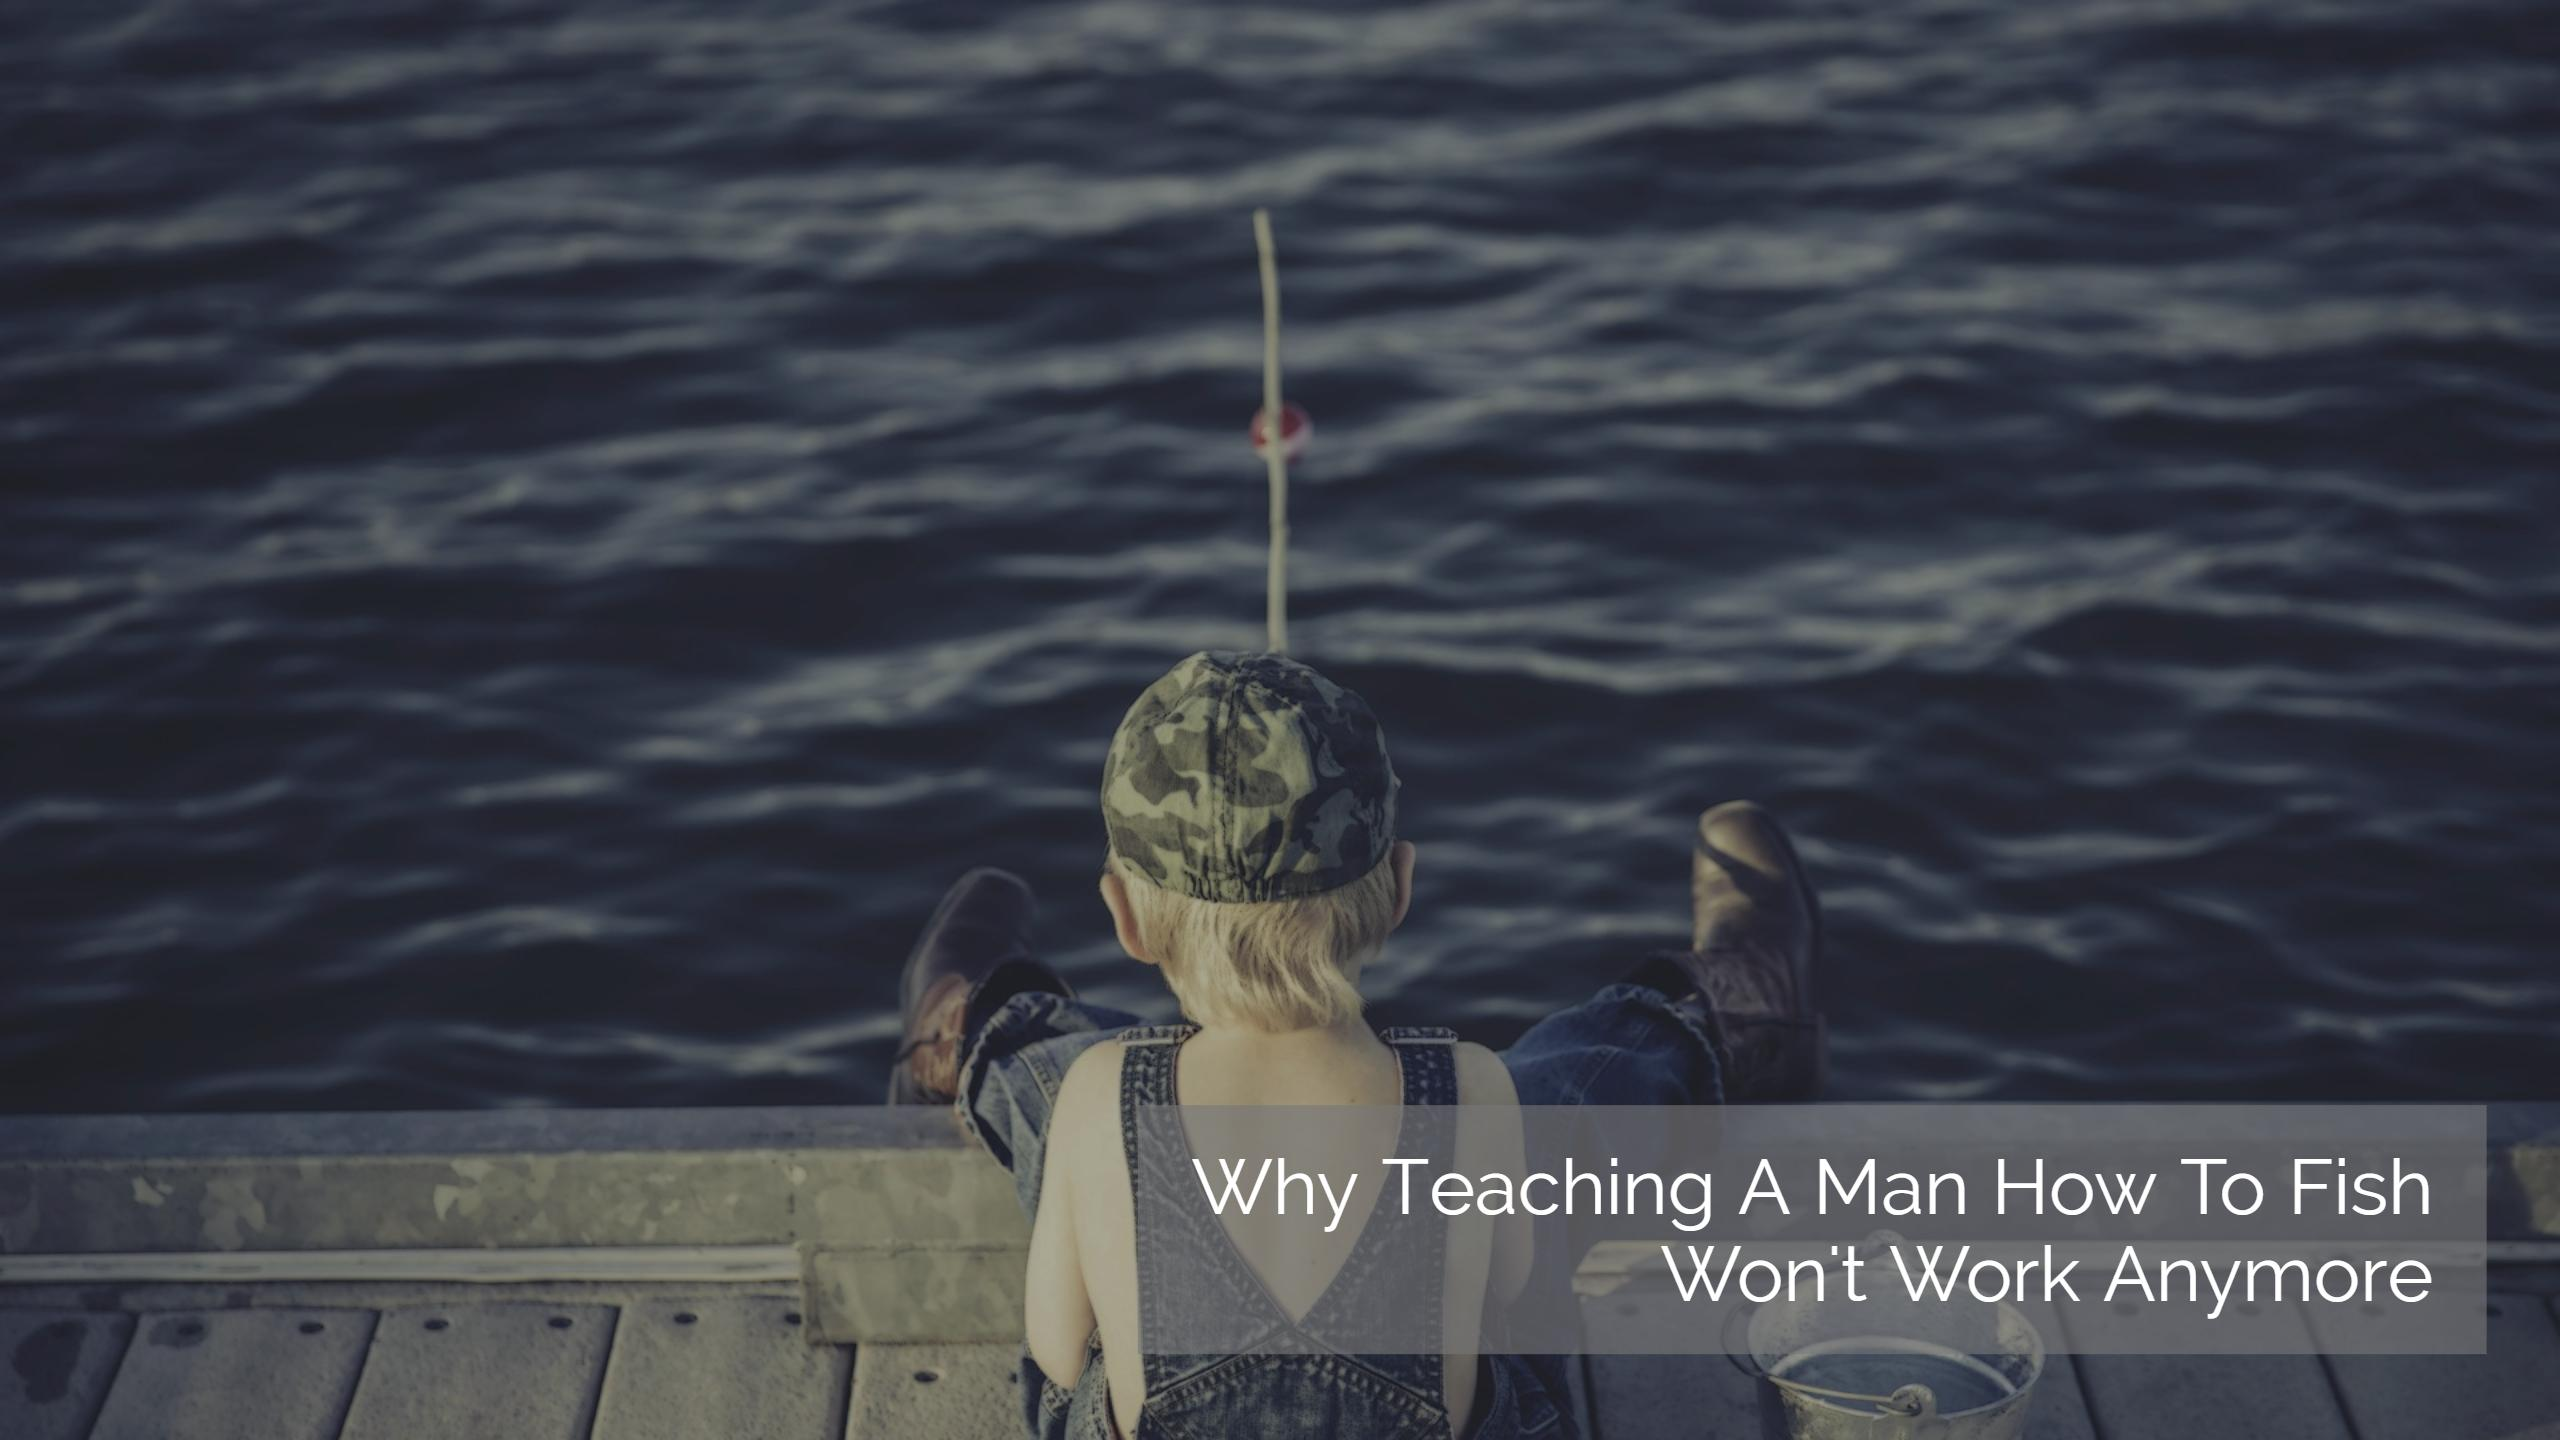 Why Teaching A Man How To Fish Won't Work Anymore